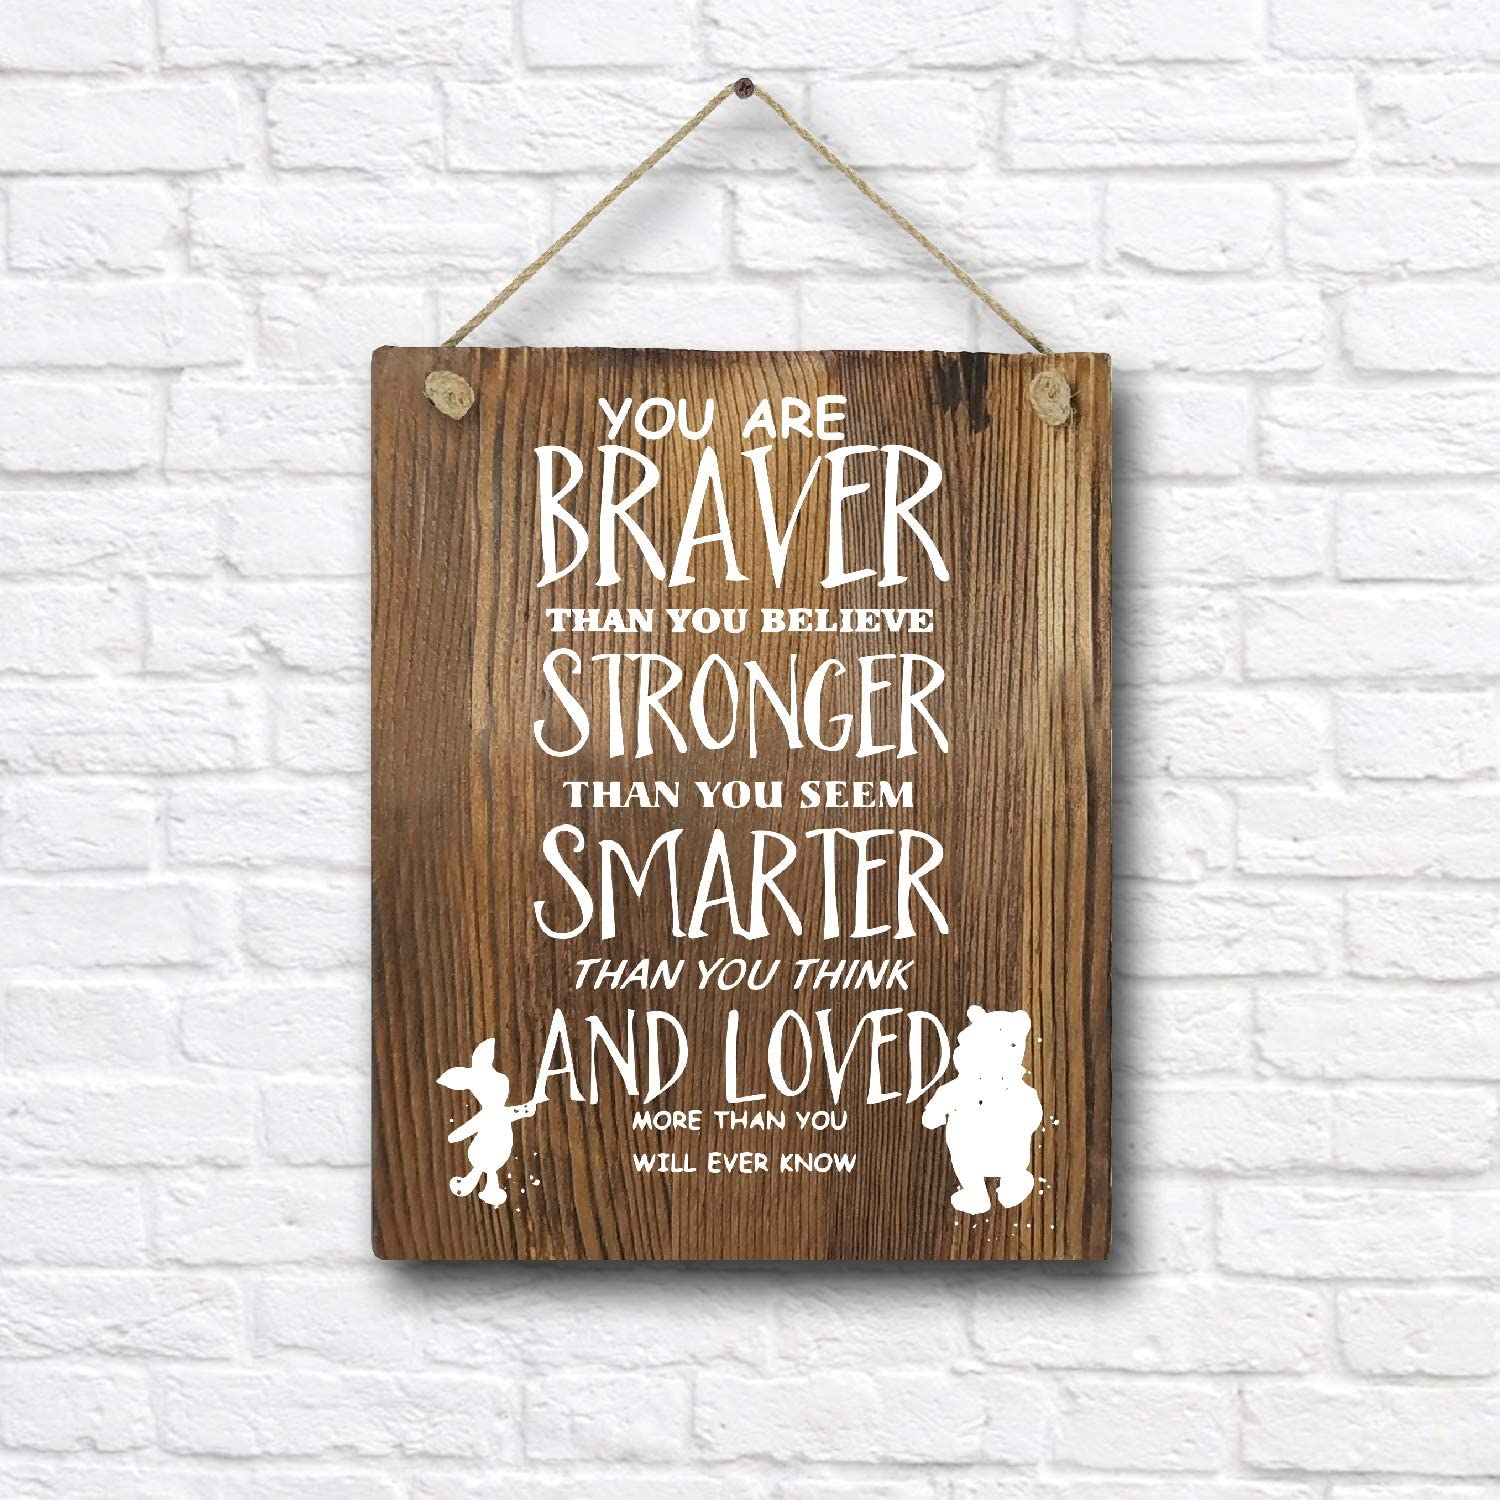 """Classic Winnie The Pooh Quotes and Saying Rustic Wood Wall Art Decor- 8""""x10"""" Wooden Hanging Art - Motivational Inspirational Classroom Office Child/Boy/Girl/Nursery Room Decor"""